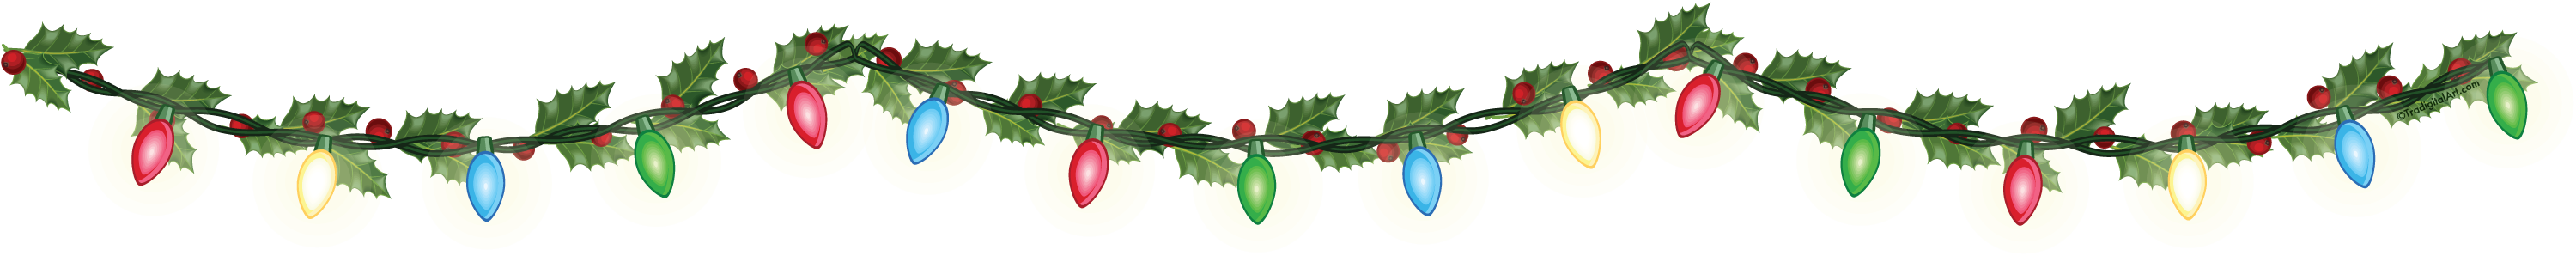 Christmas Garland Png Free Download Best Christmas Garland